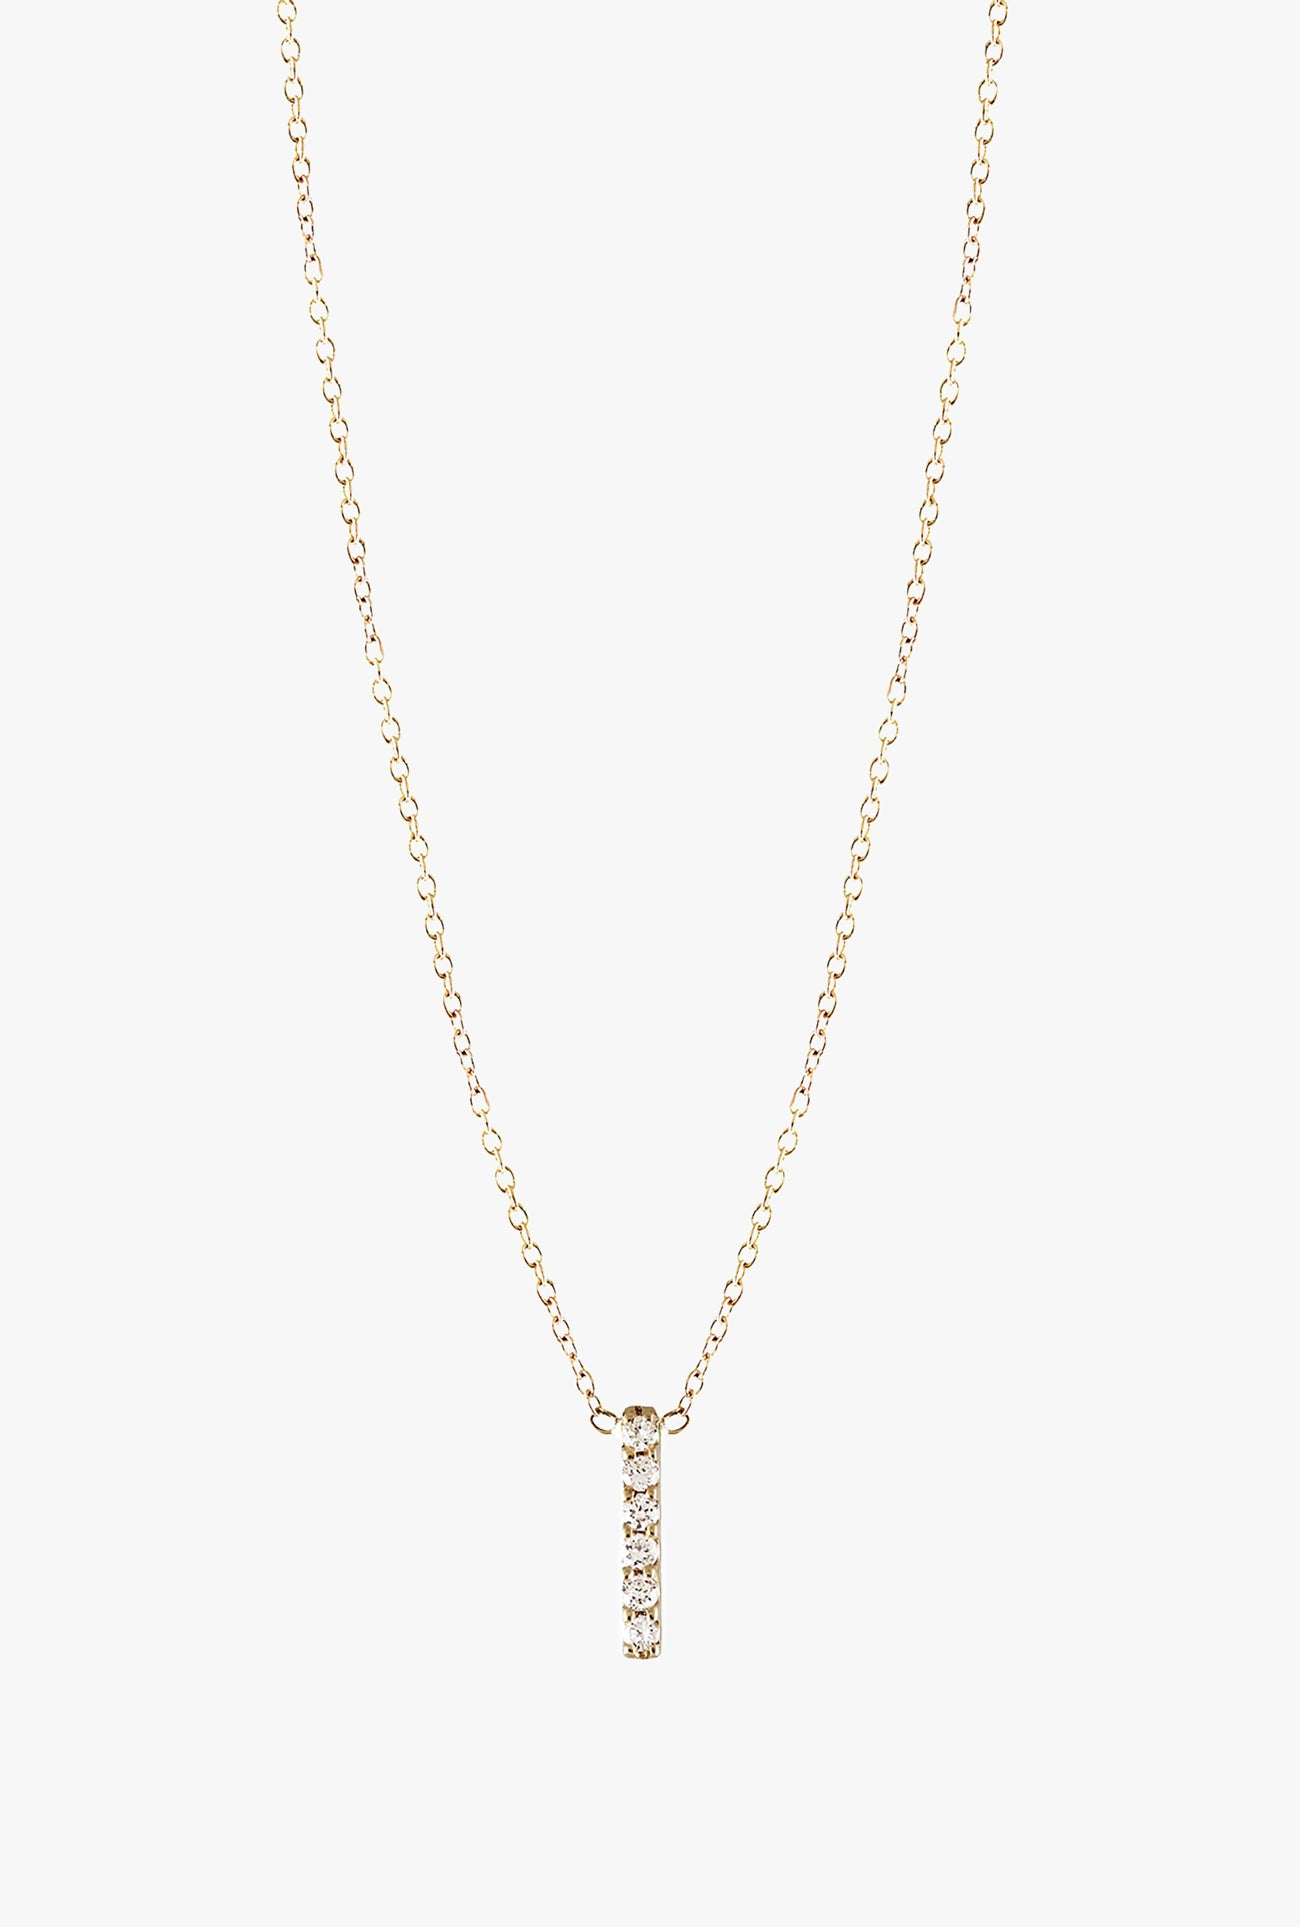 6 Diamond Vertical Bar Necklace